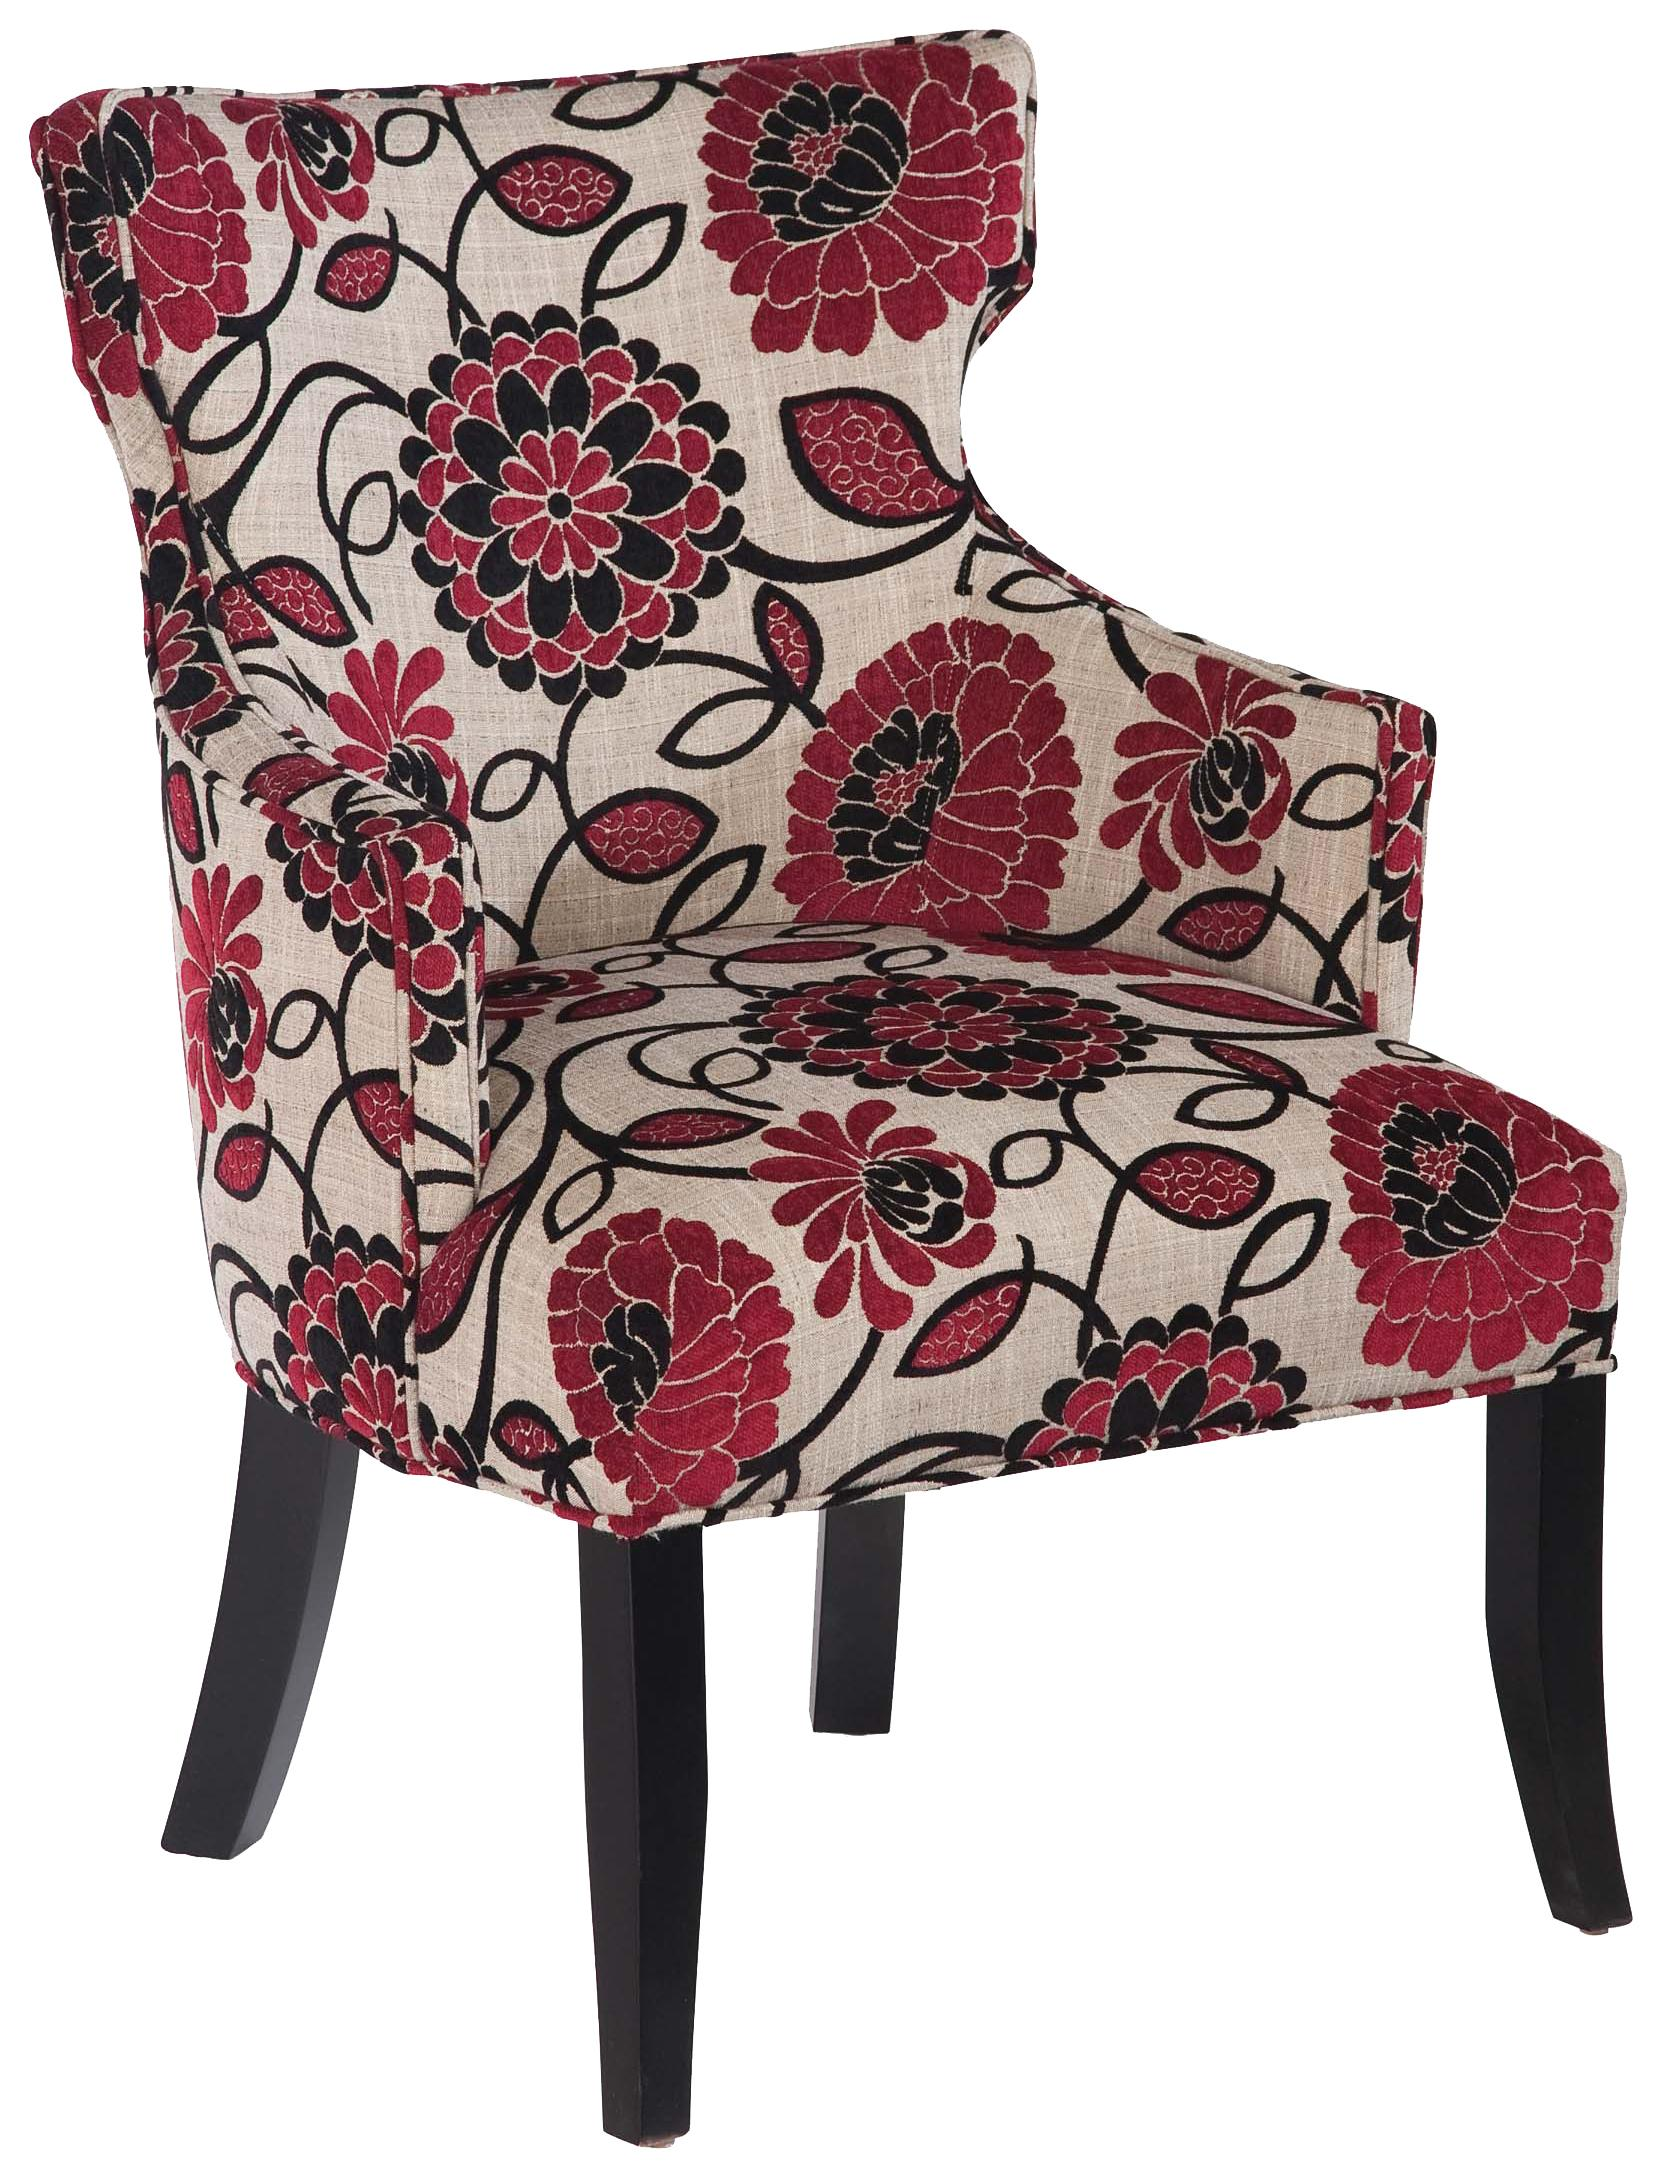 Fairfield Chairs Transitional Wing Chair - Item Number: 6062-01